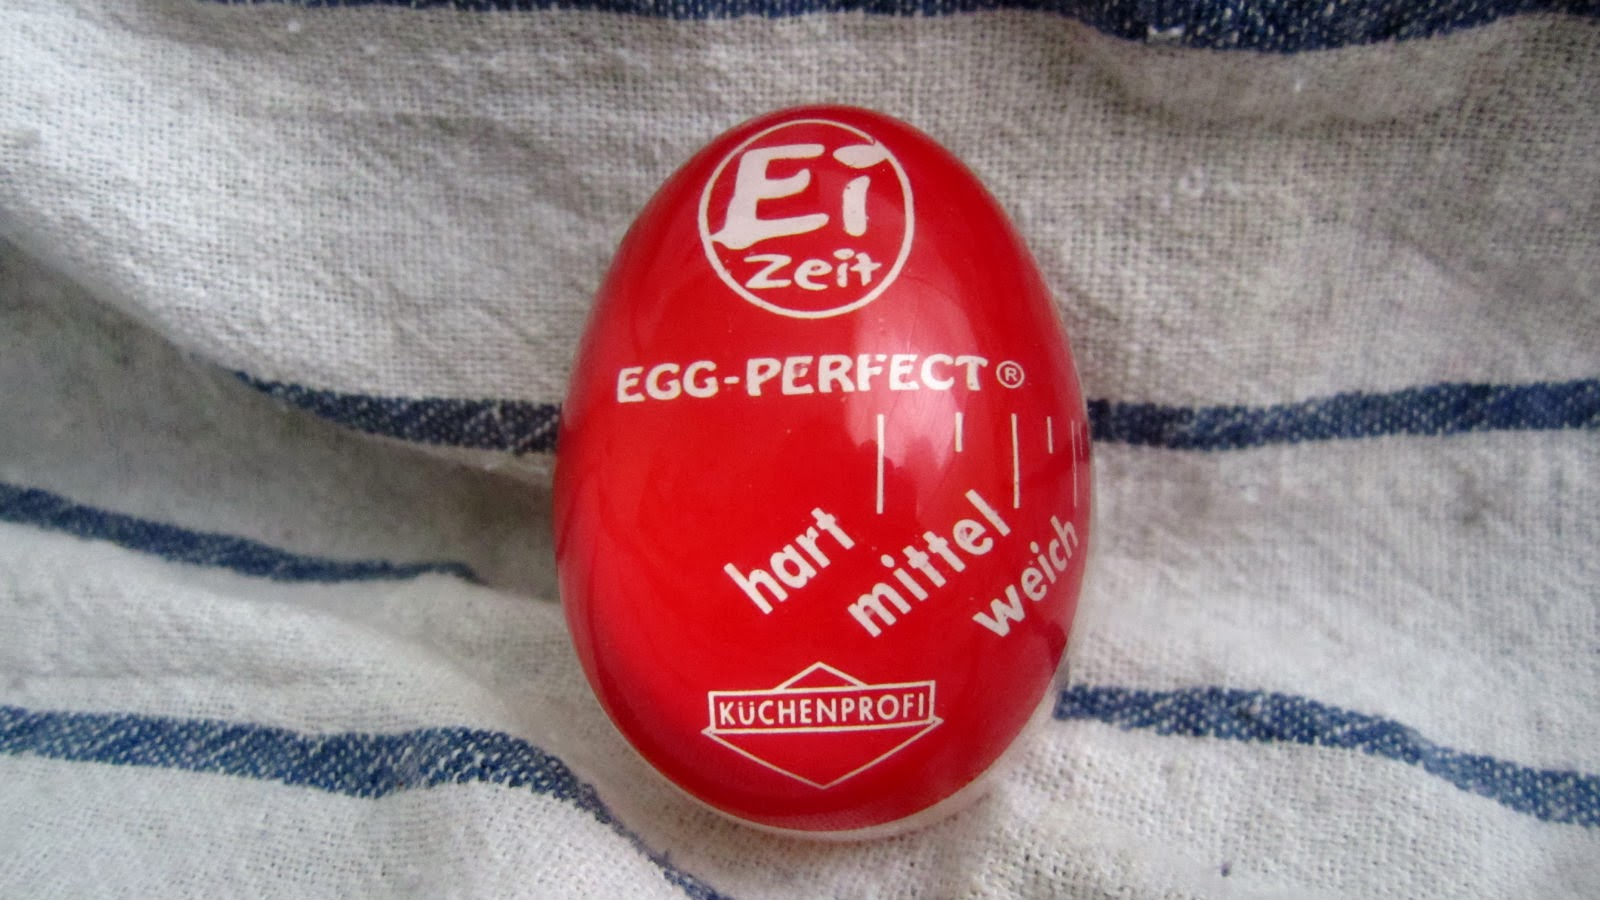 Egg-Perfect